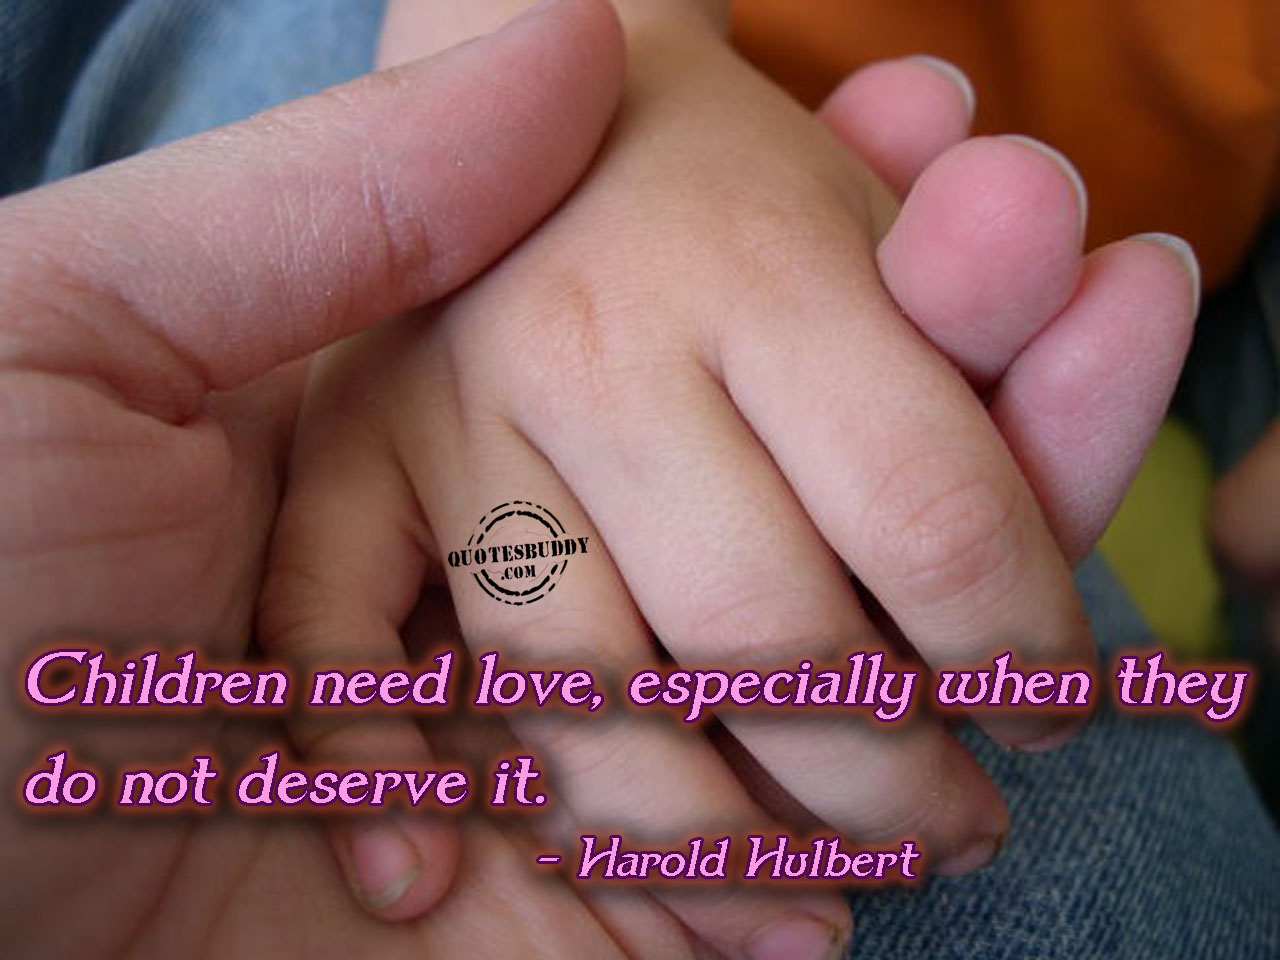 Mahbubmasudur: My Kids Quotes, Love My Kids Quotes, I Love